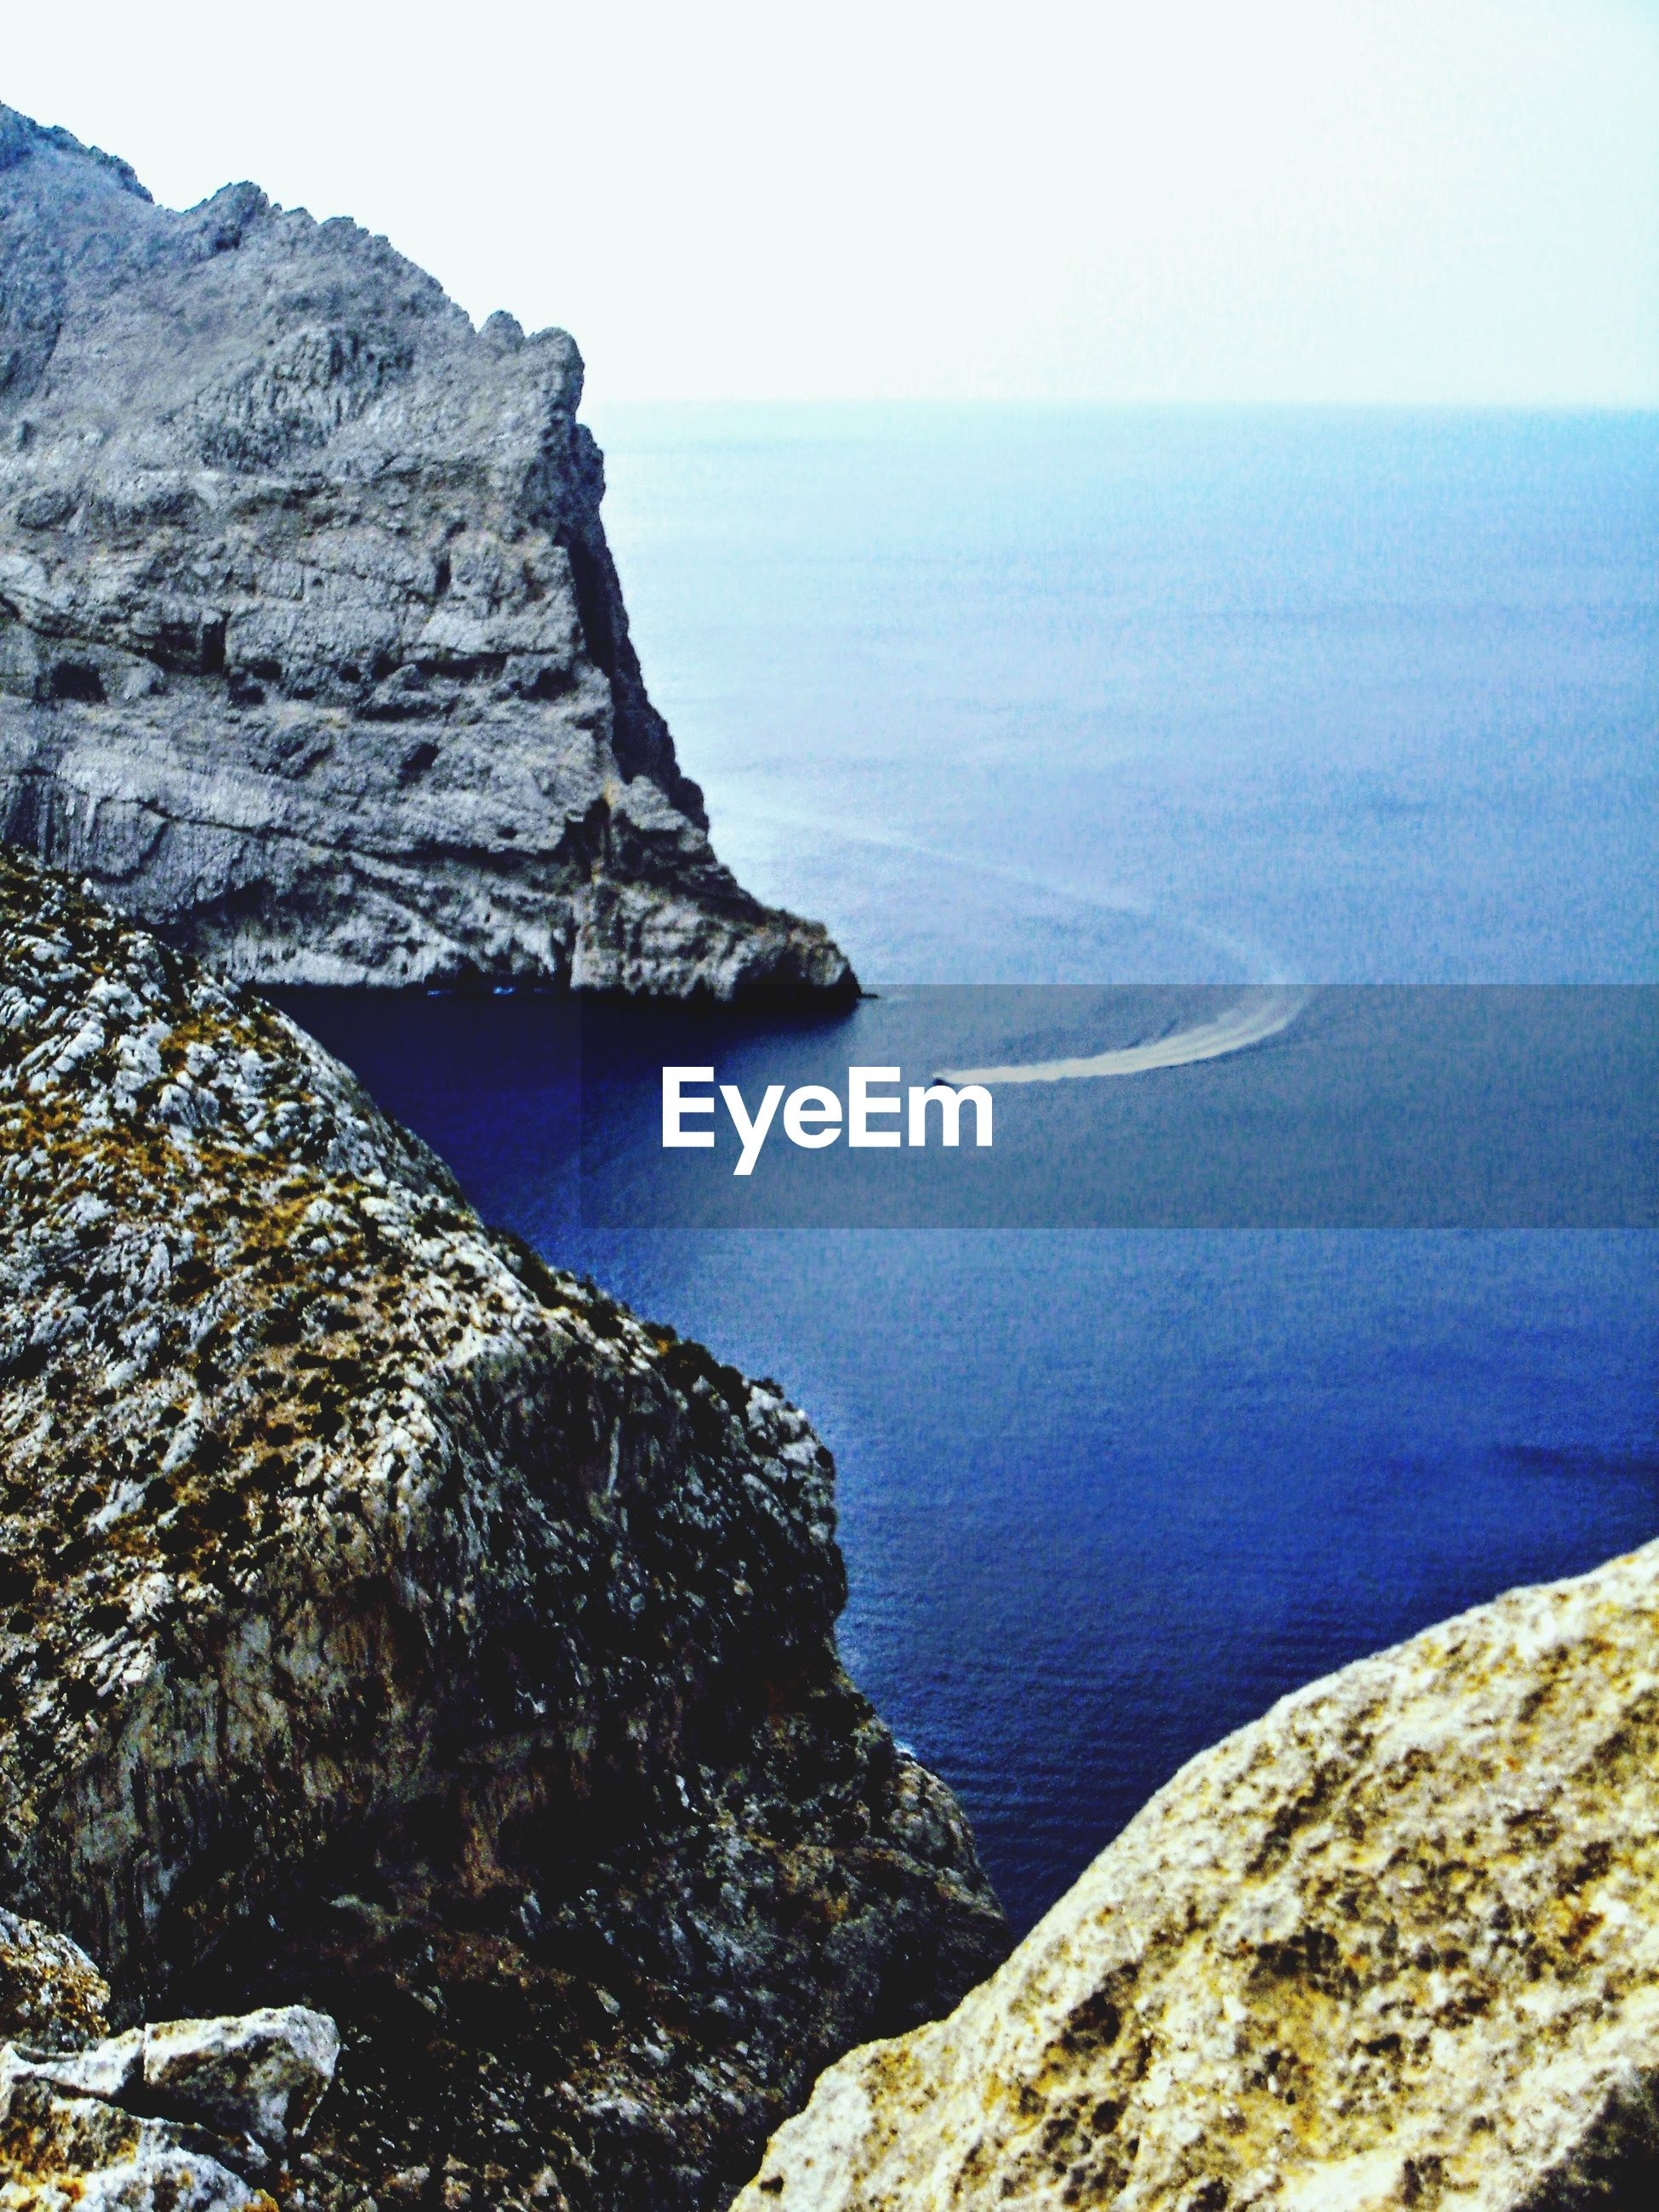 SCENIC VIEW OF BAY AND ROCK FORMATION